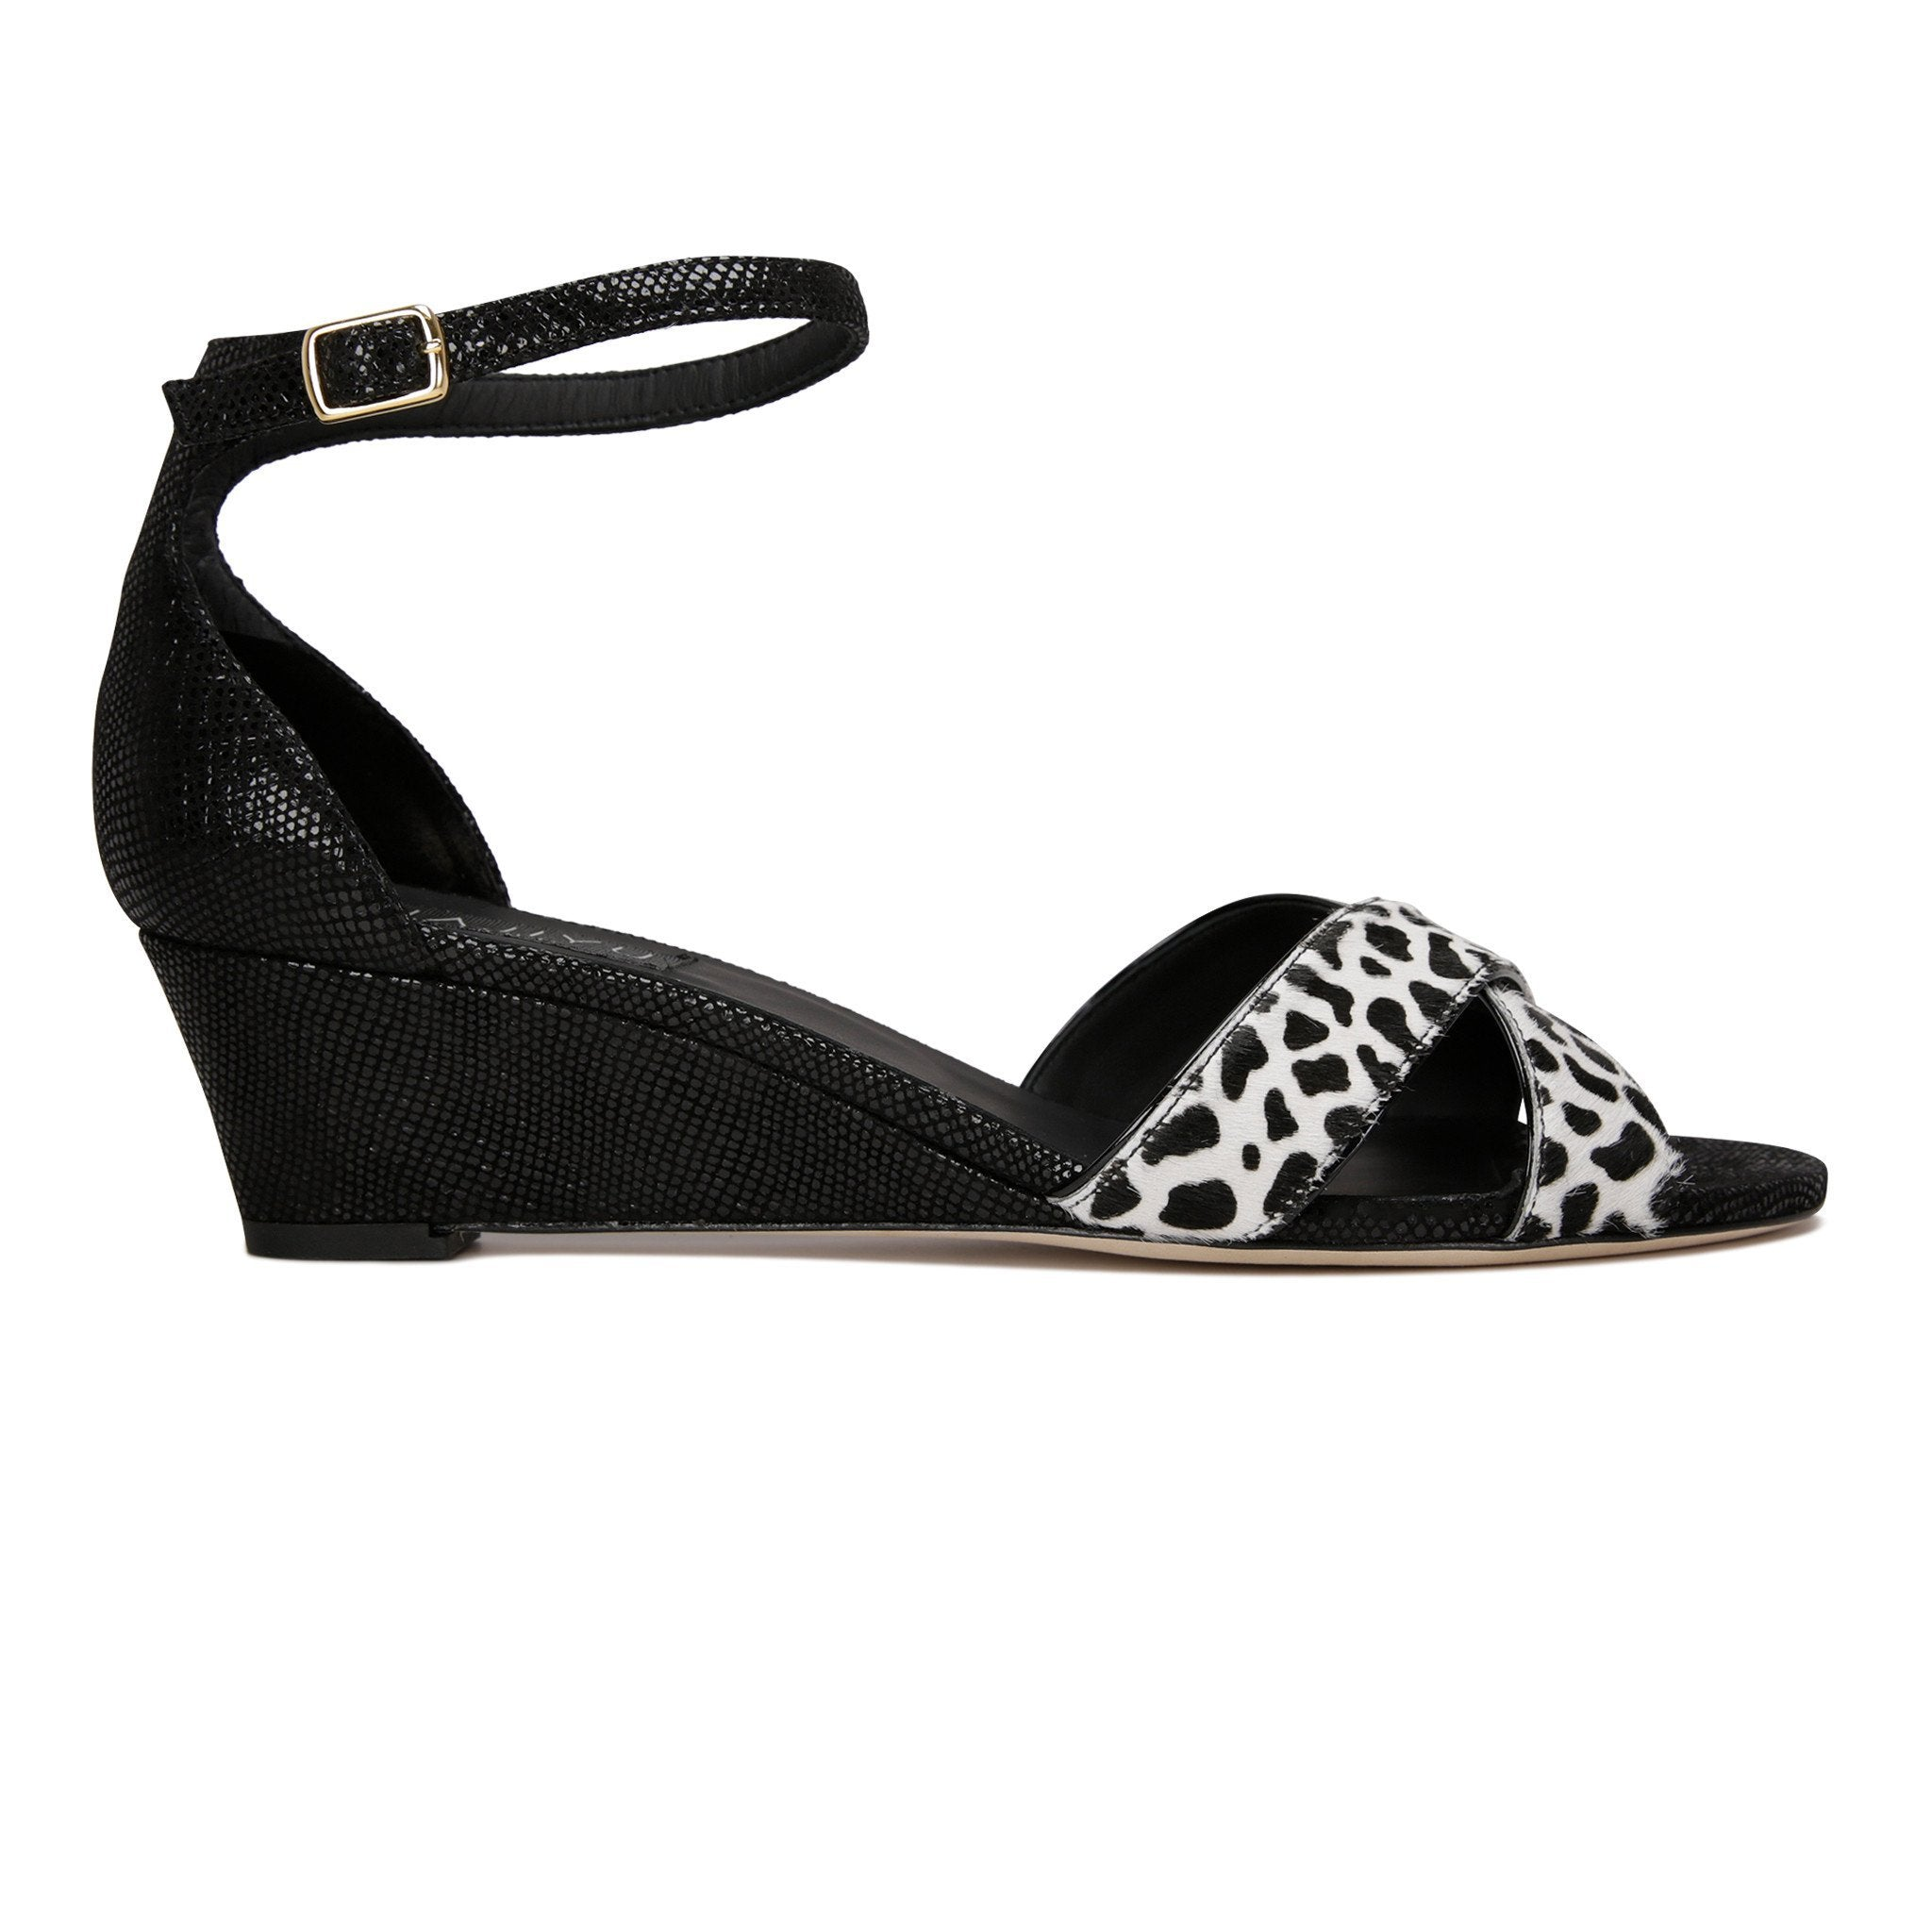 SORRENTO - Calf Hair Dalmation + Karung Nero, VIAJIYU - Women's Hand Made Sustainable Luxury Shoes. Made in Italy. Made to Order.